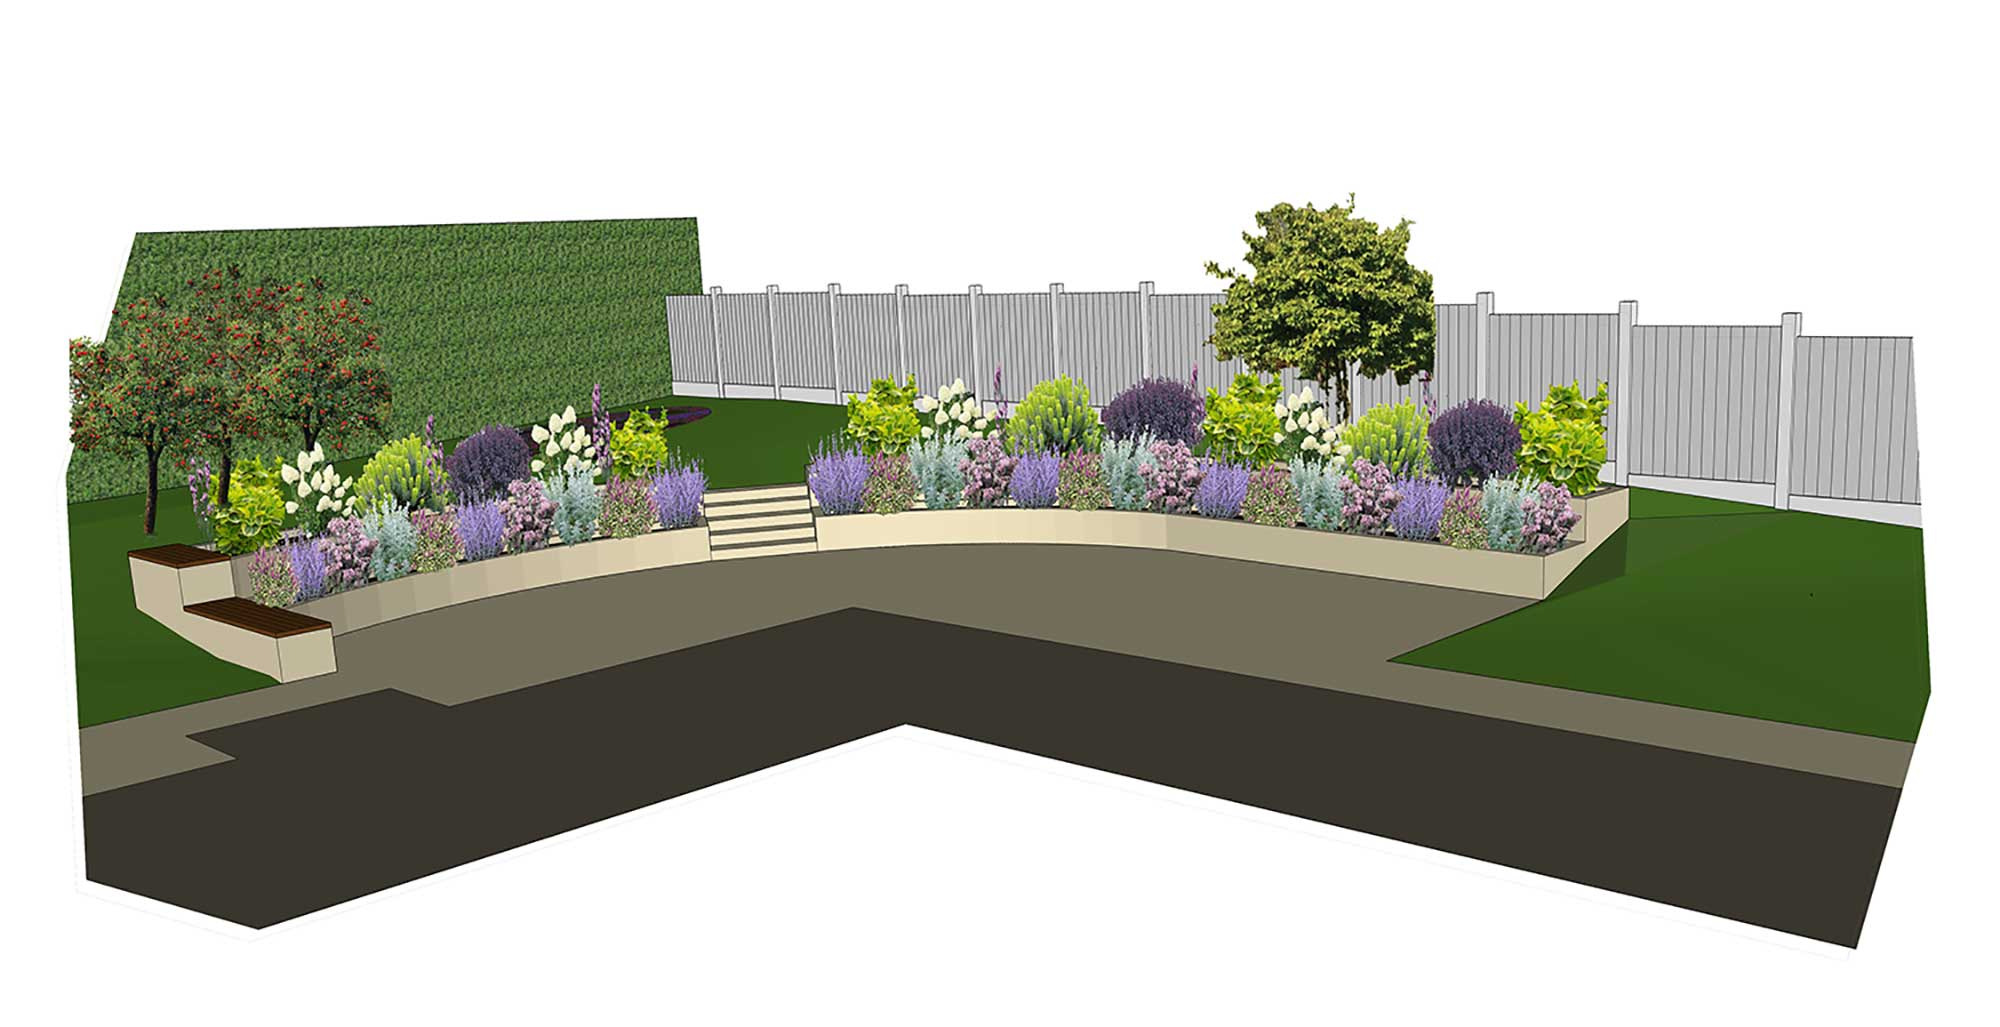 Rear garden design visualisation garden design layout for Garden and design